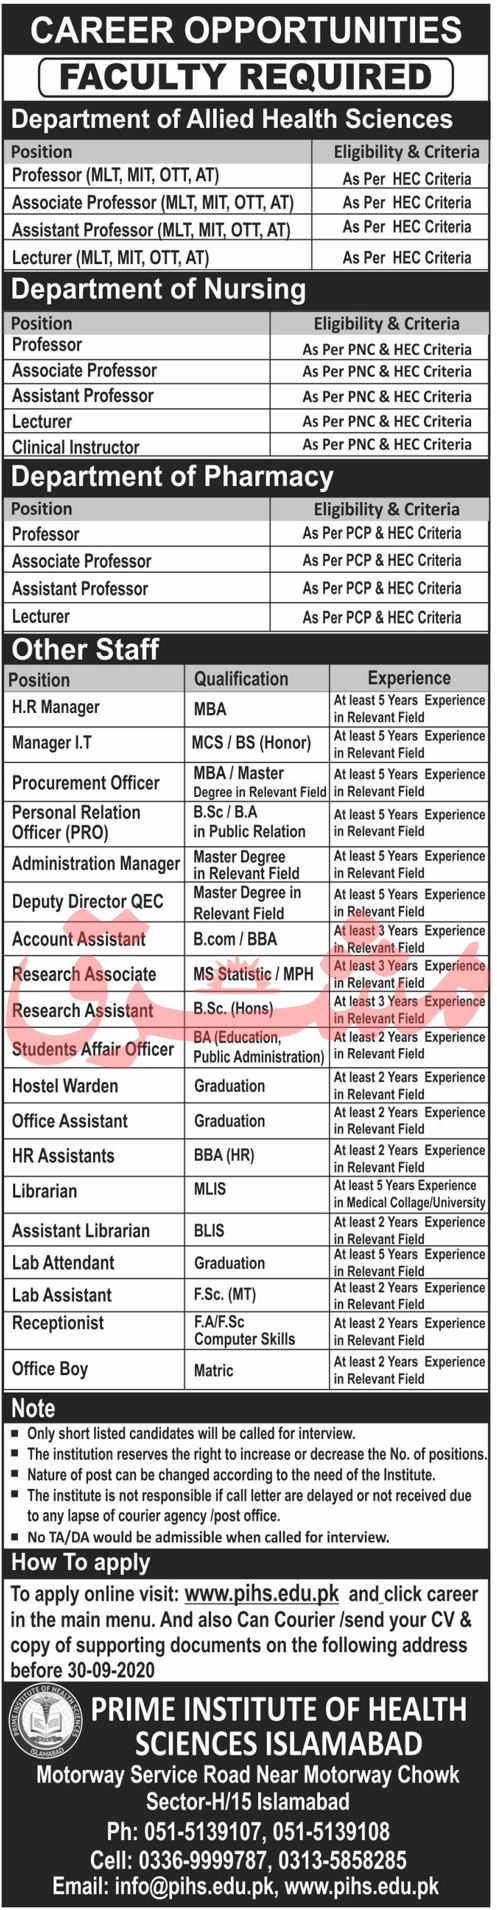 Prime Institute of Health Sciences Jobs September 2020